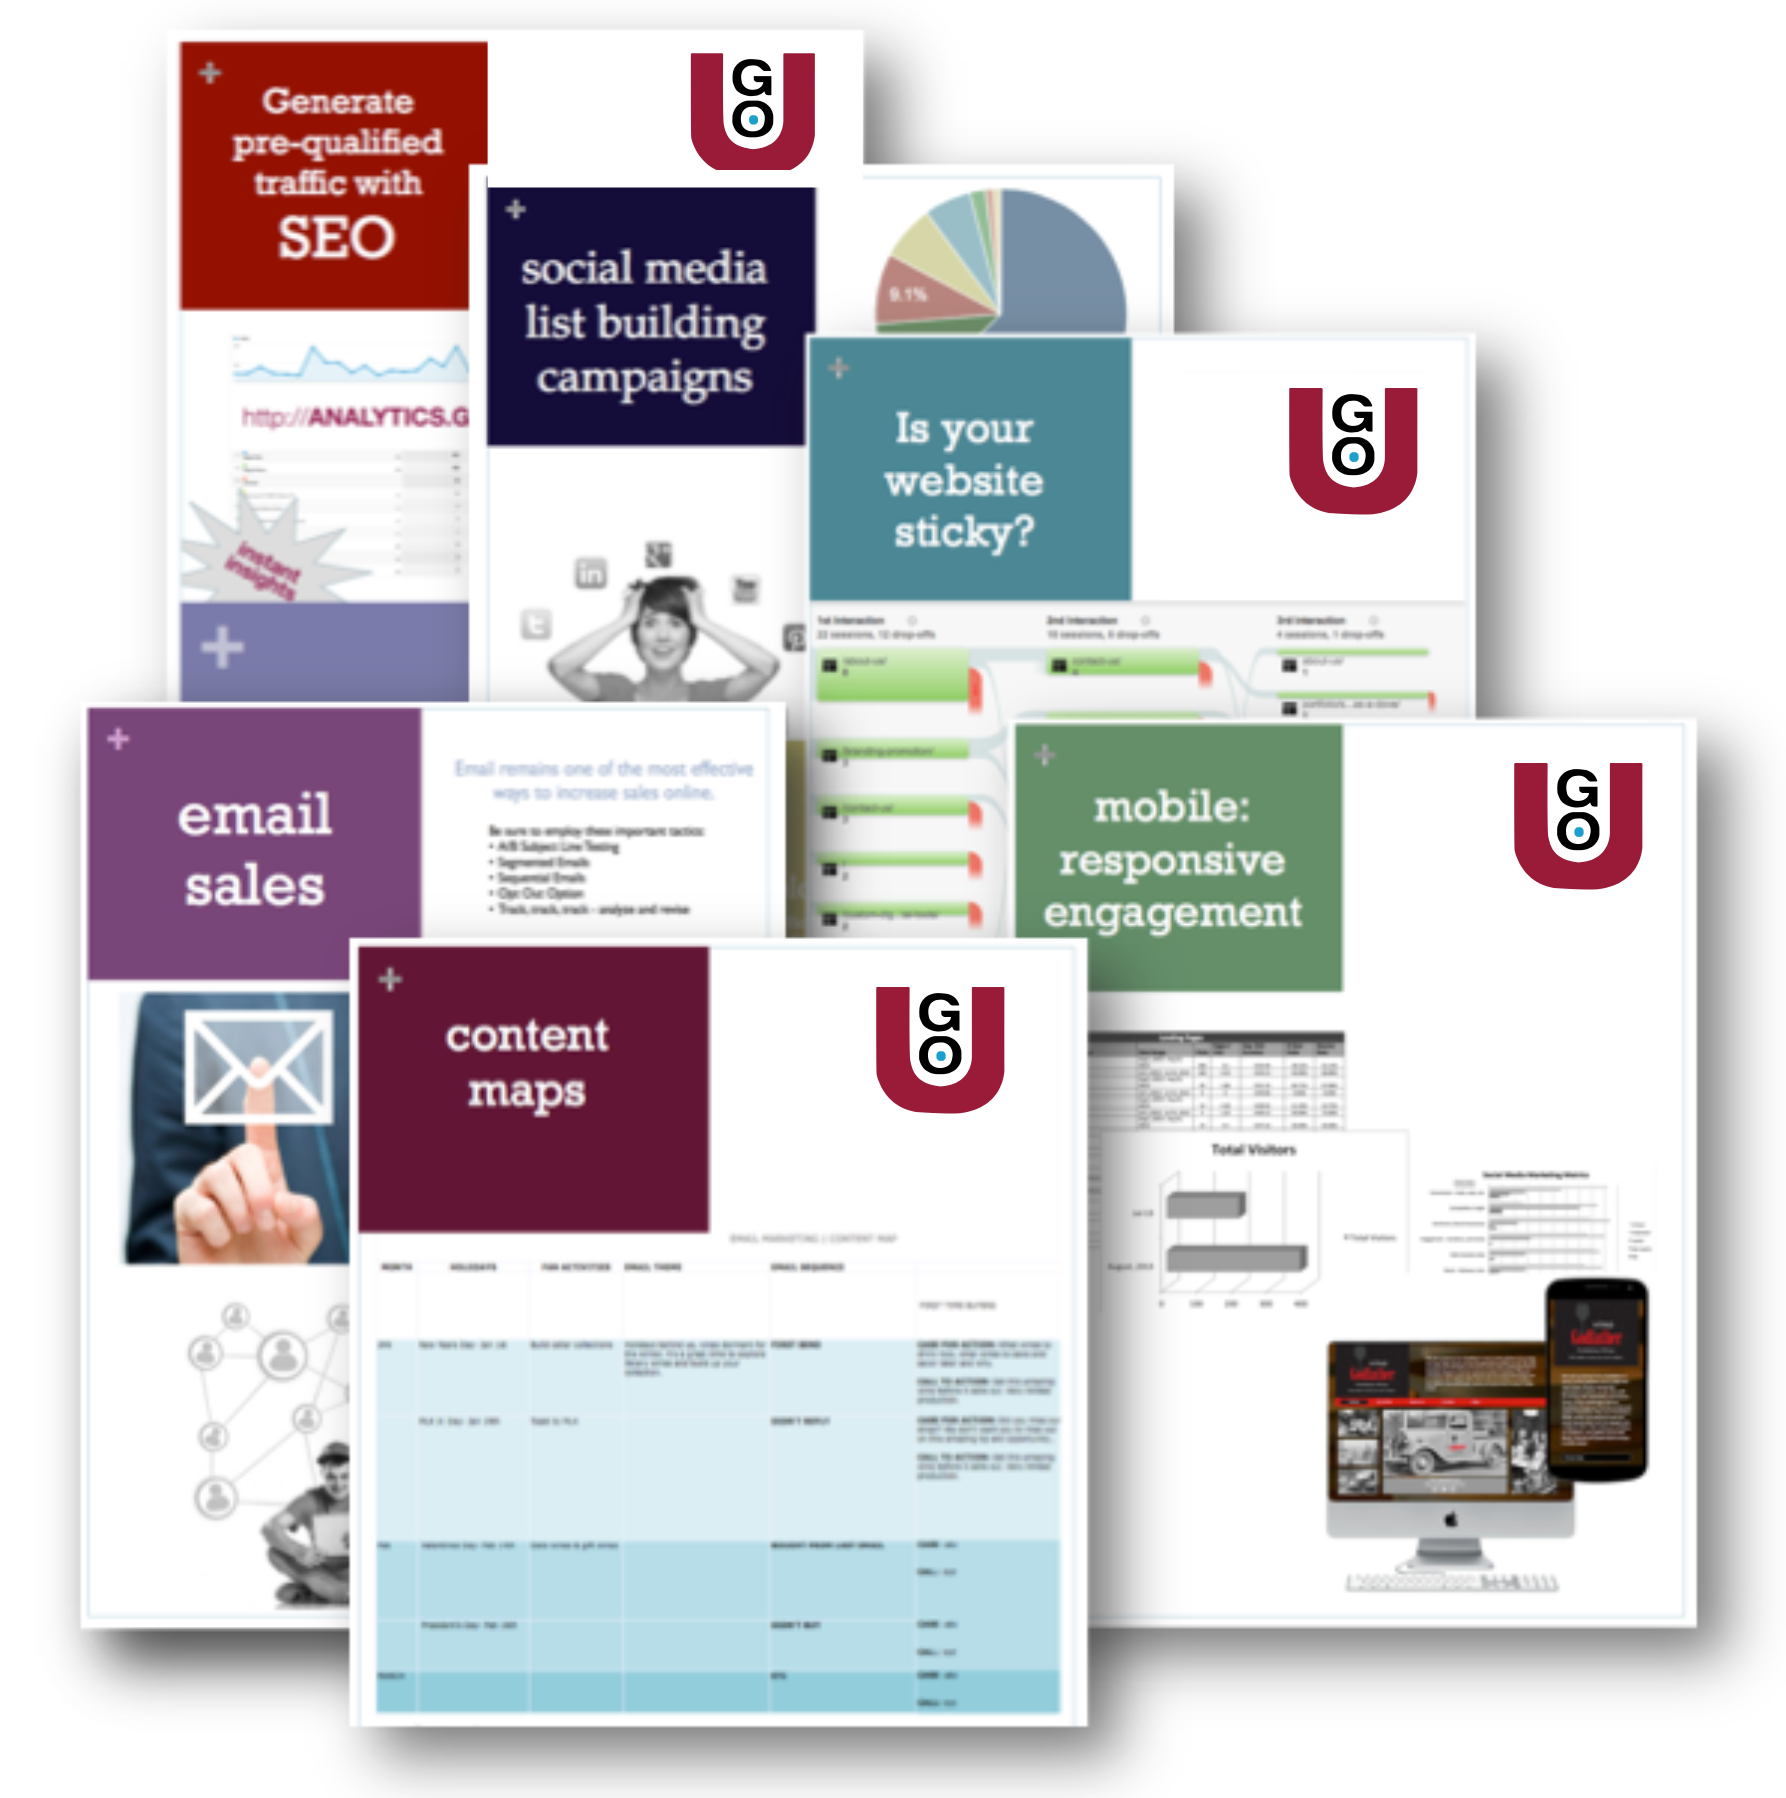 GO-U Online Marketing And Wine Business Promotion Tool Kit